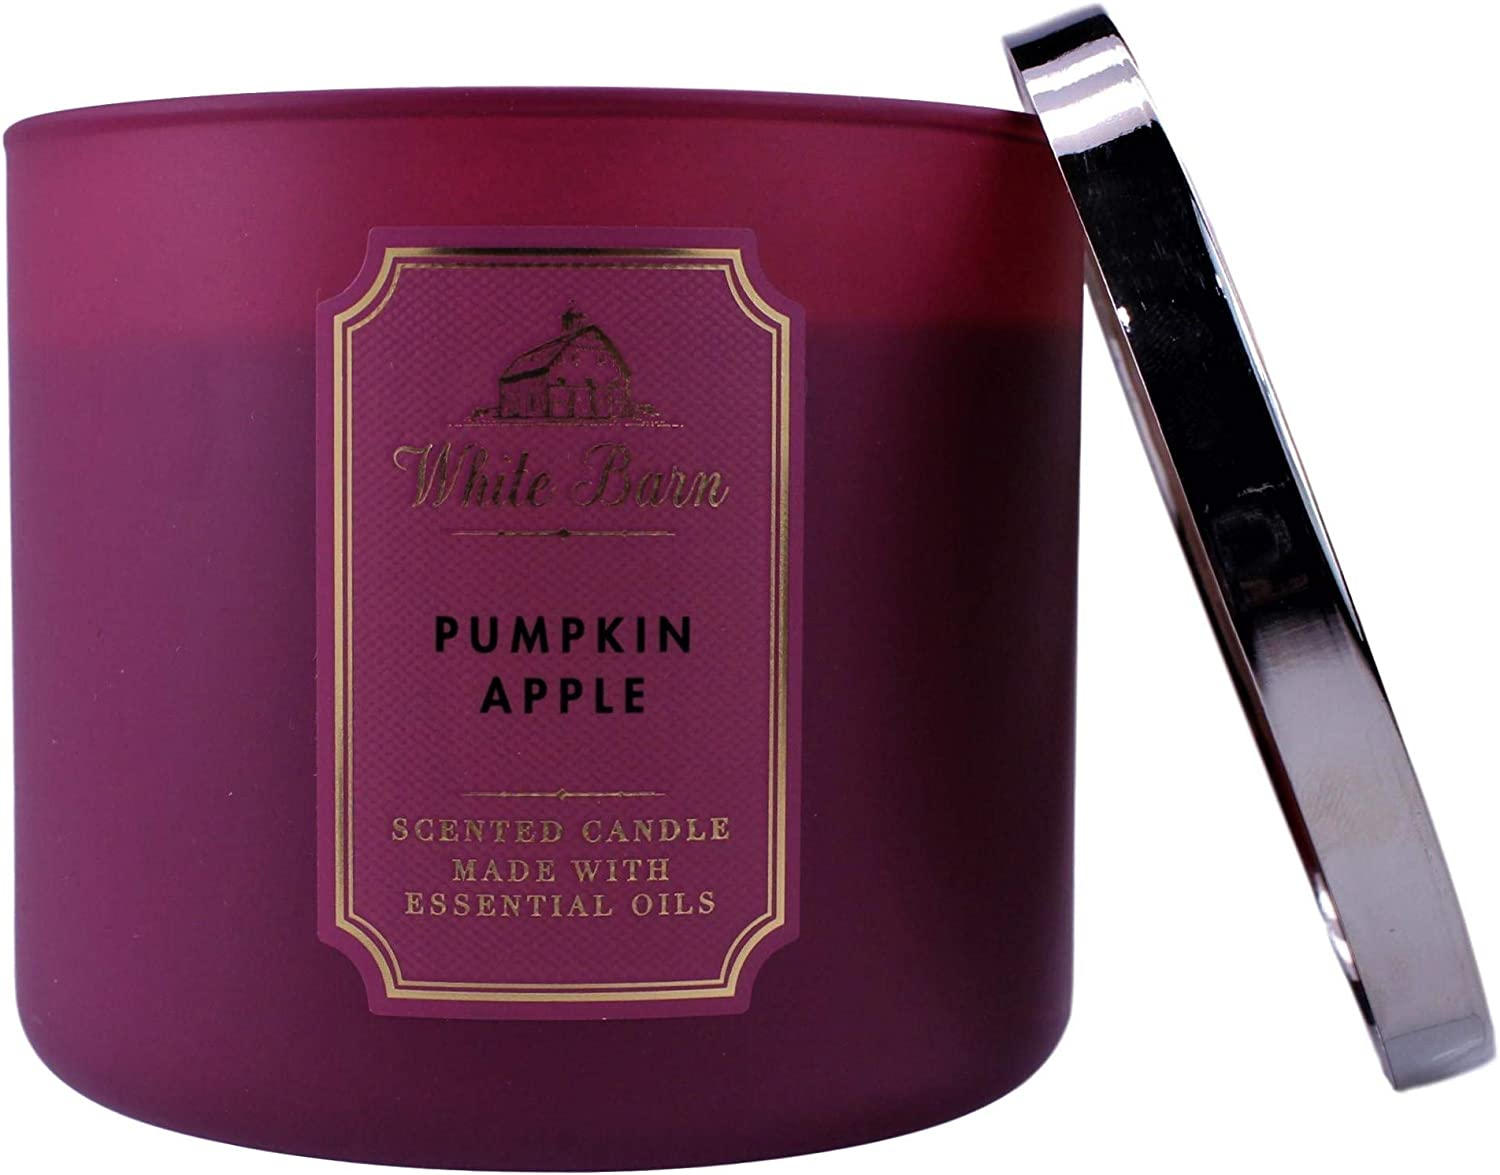 2020 White Barn Bath 3 Wick Candle in Pumpkin Apple (Red Apple, Pumpkin, Cinnamon, Clove Buds) Made W Essential Oils w Burn Time of 25-45 Hours